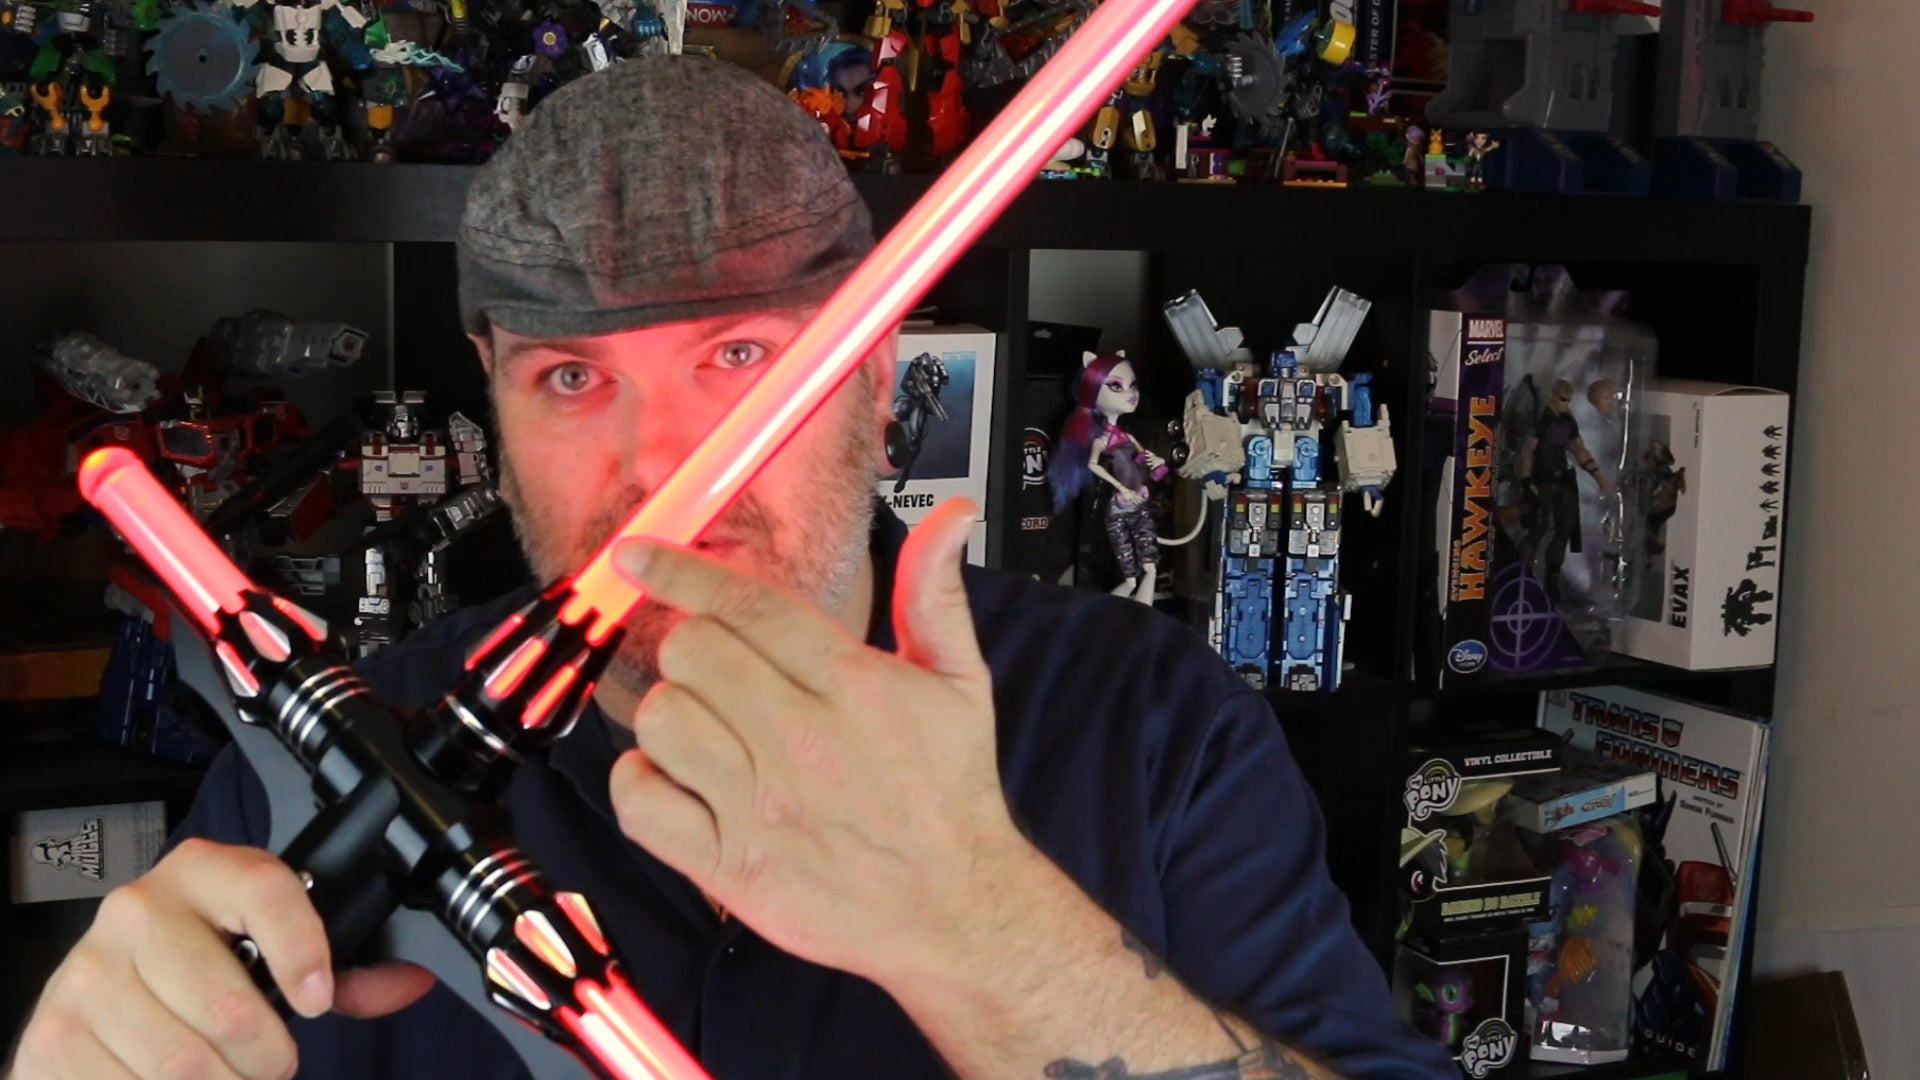 Toy Time Wields UltraSabers' Renegade Combat Lightsaber